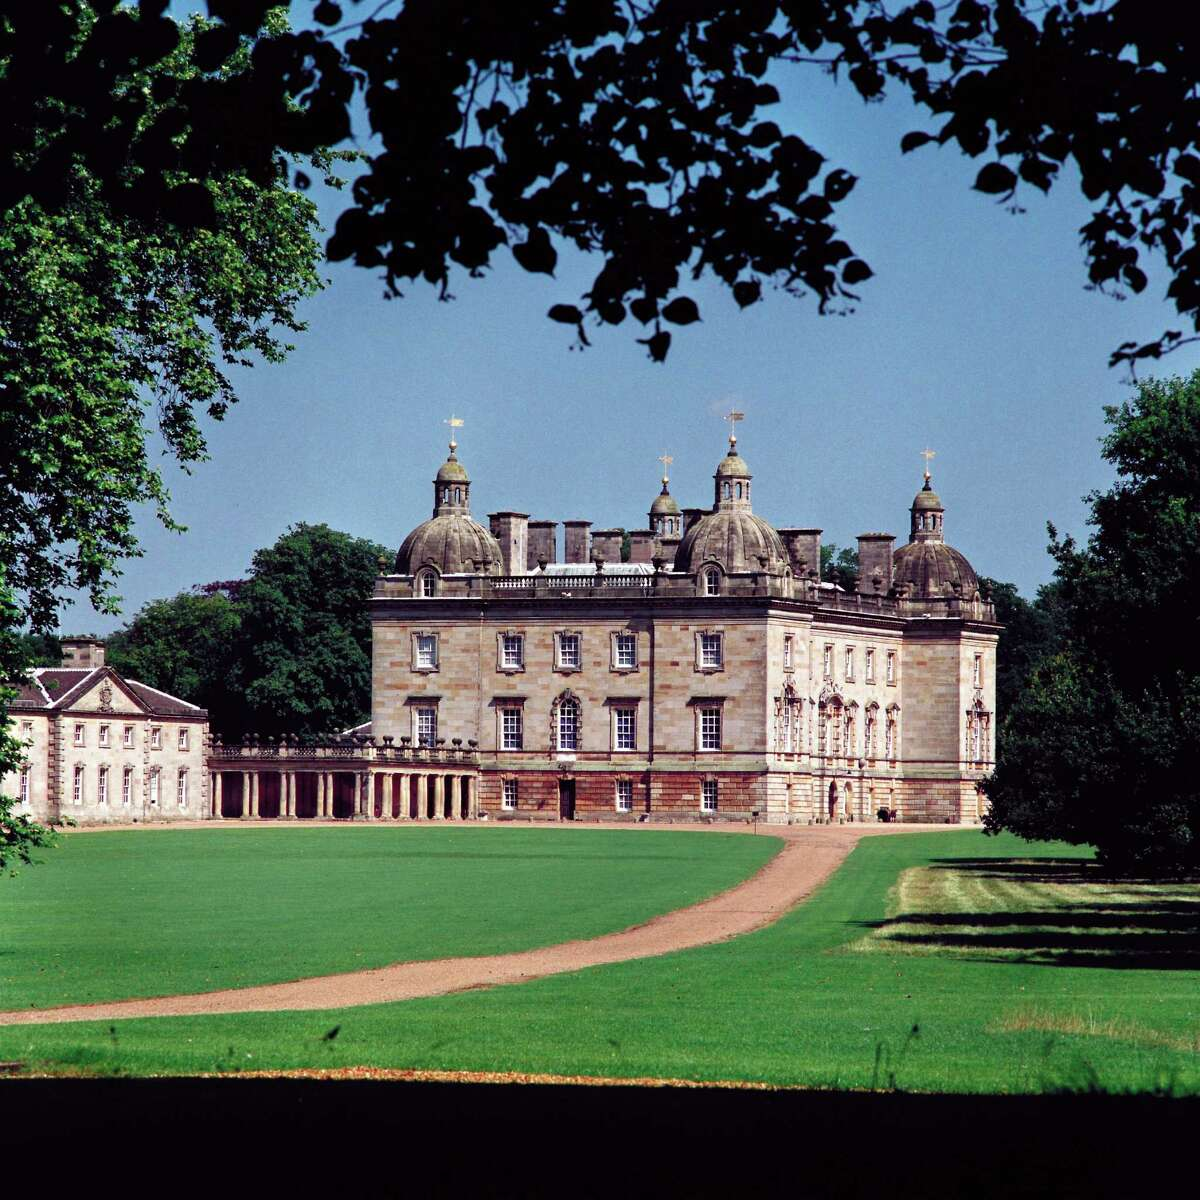 Treasures from Houghton Hall, built in the early 1700s by Sir Robert Walpole, will come to the Museum of Fine Arts, Houston June 22, 2014.